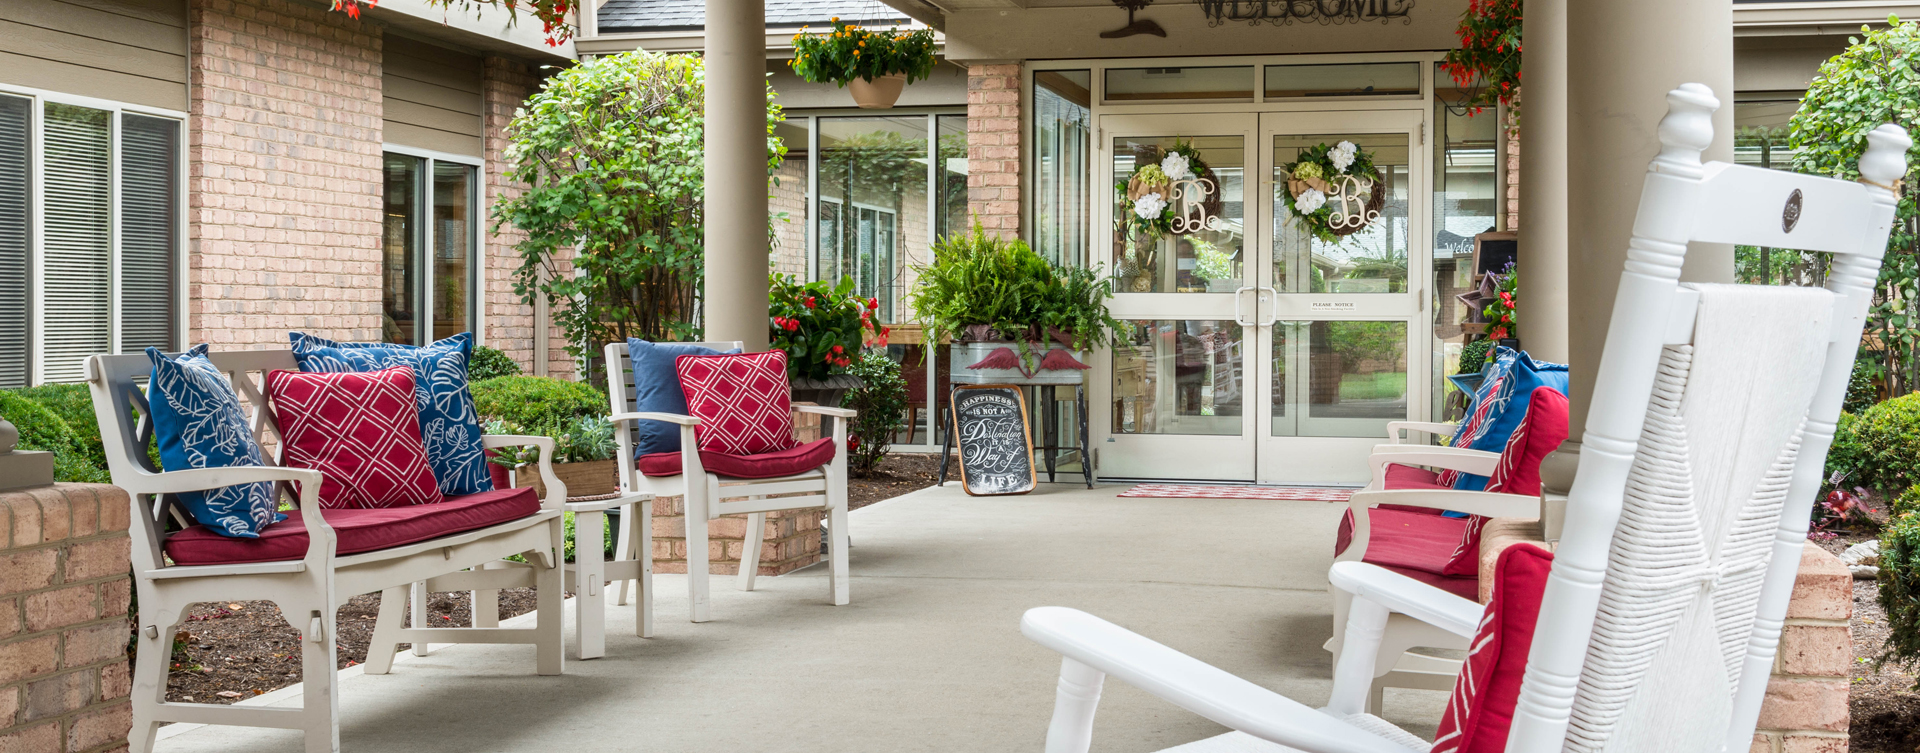 Sip on your favorite drink on the porch at Bickford of Middletown